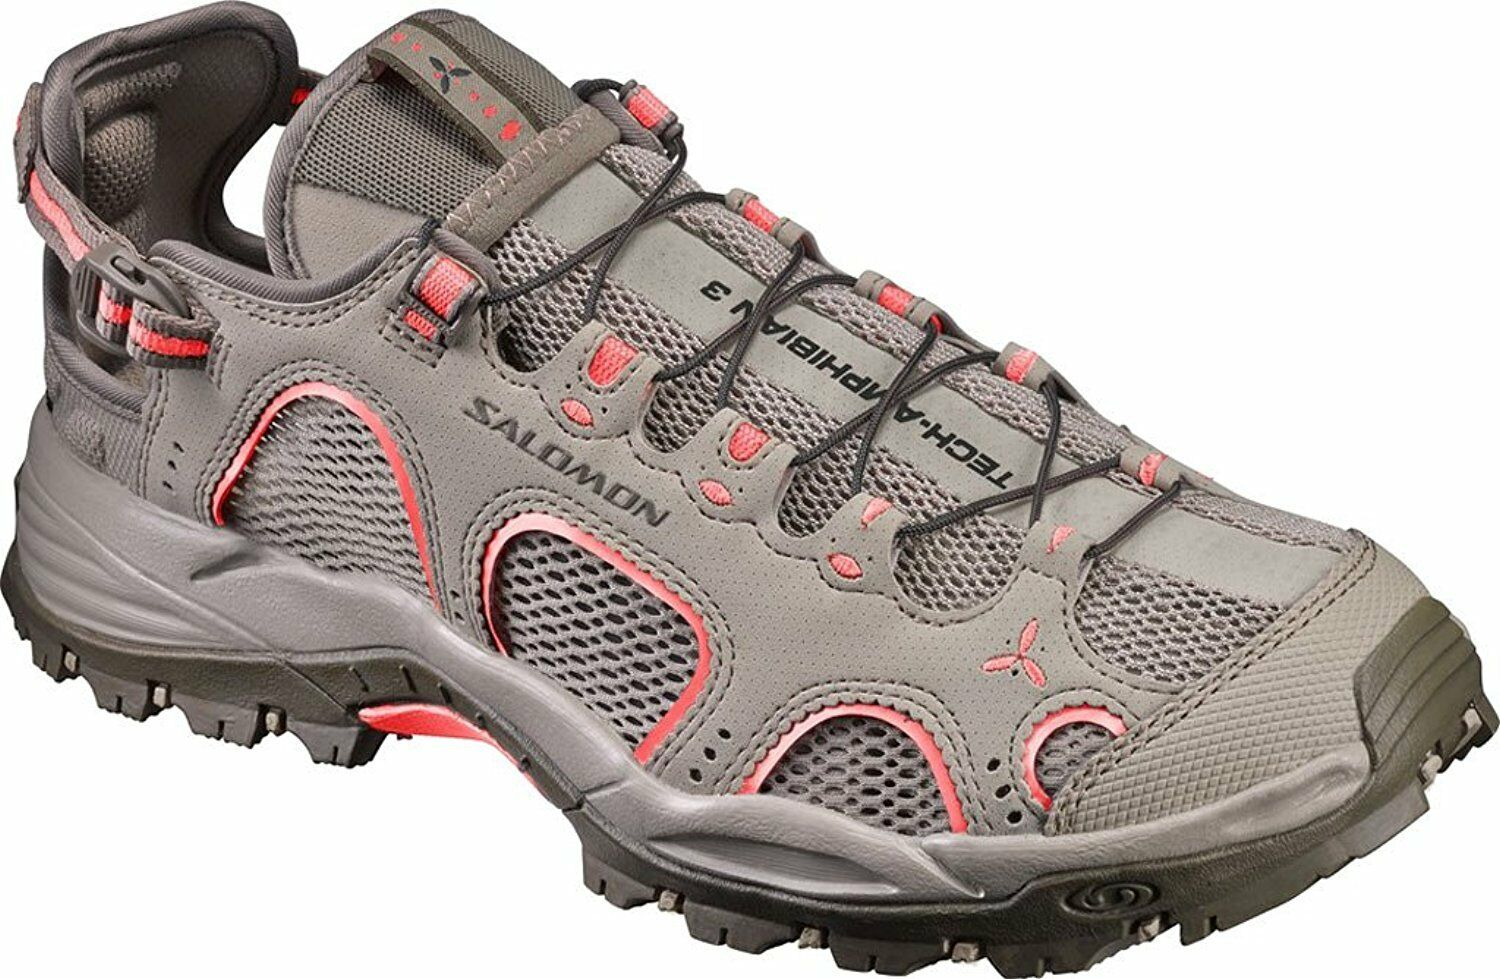 Salomon Womens Techamphibian 3 Athletic Sneakers- Pick SZ/Color.